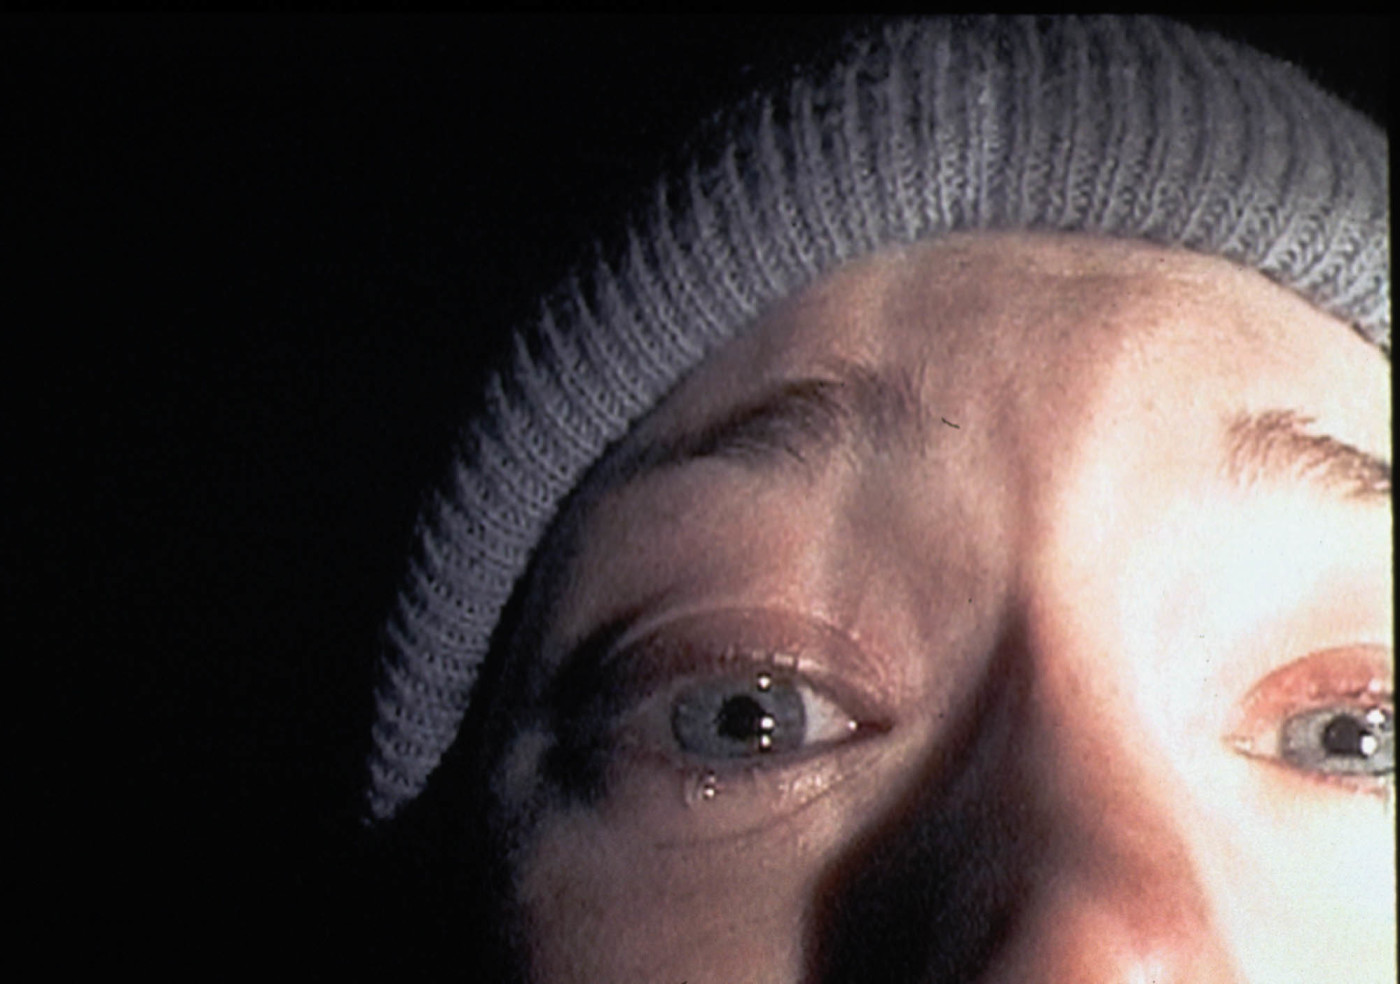 Heather Donahue turns the camera on herself during 'The Blair Witch Project'